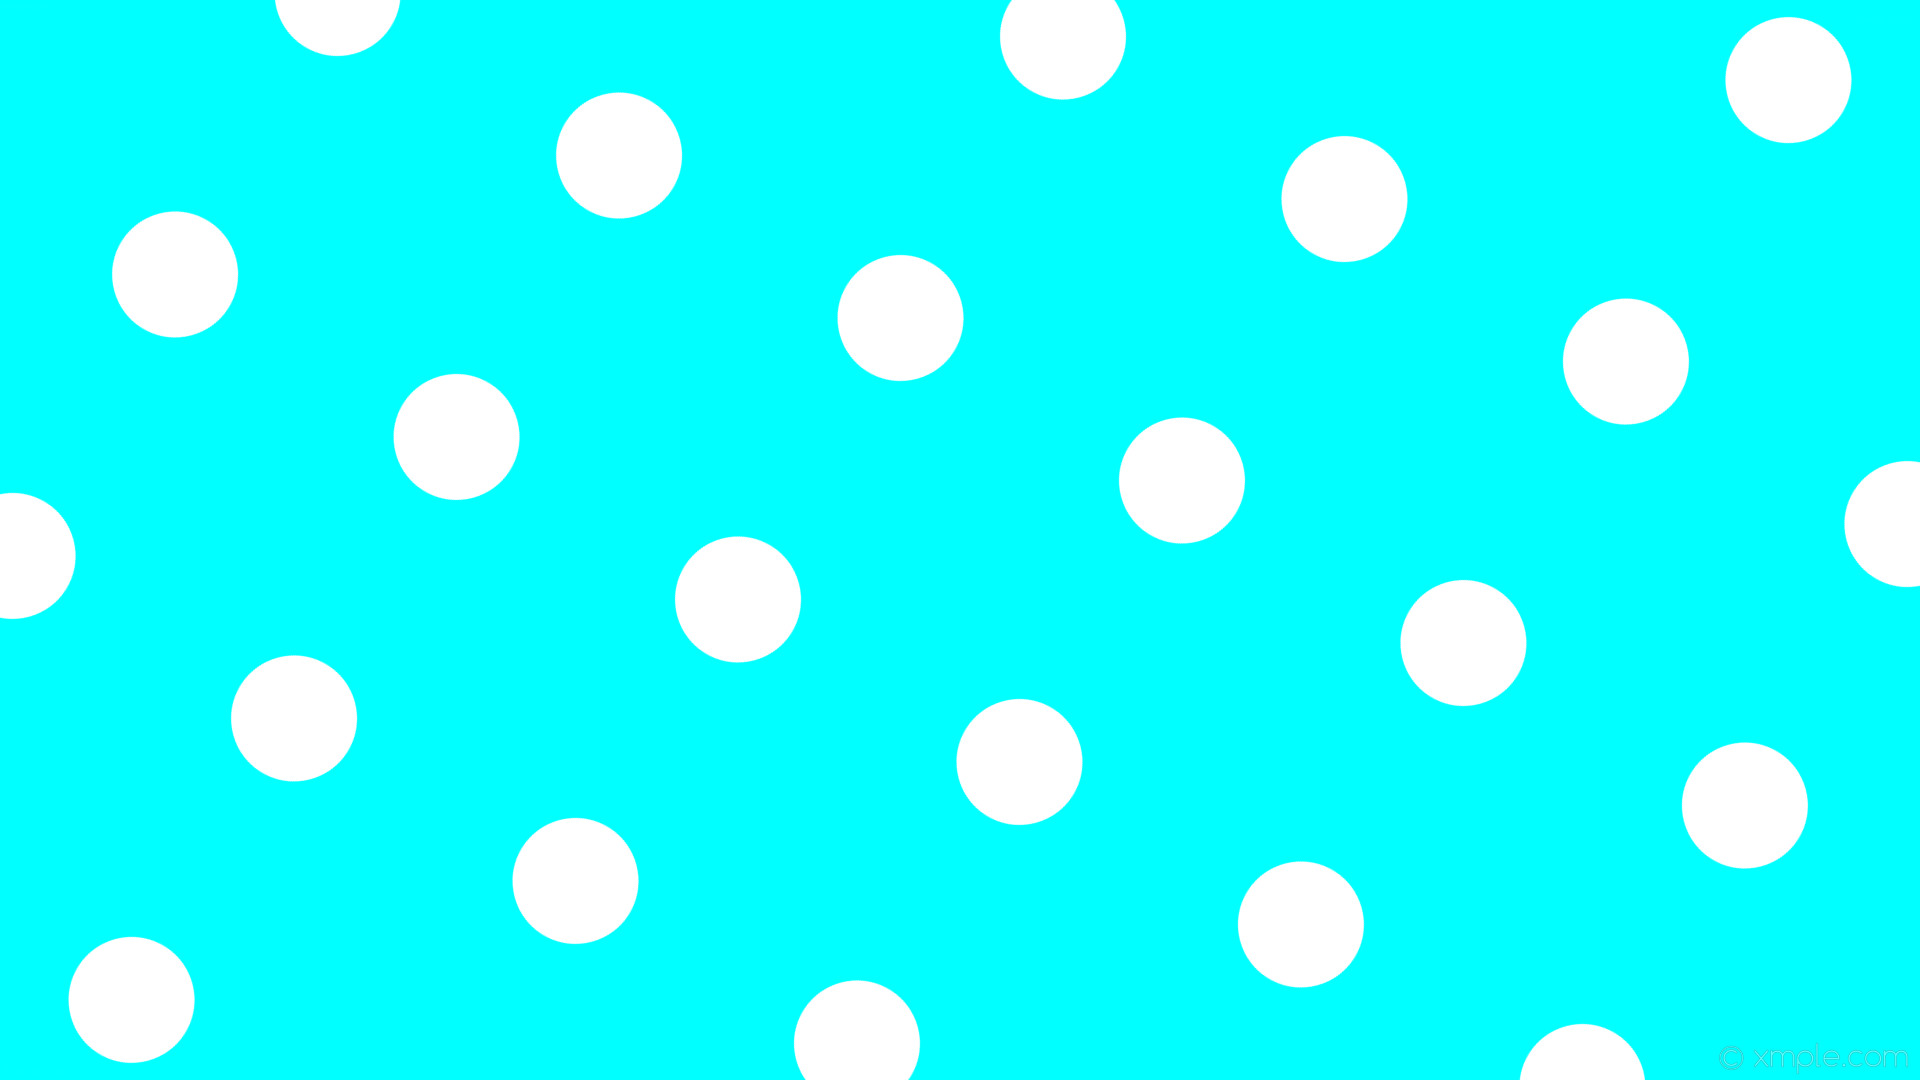 blue polka dot wallpaper hd – photo #30. Wallpaper orange lime squares  checkered #a8e81d #e8711d .